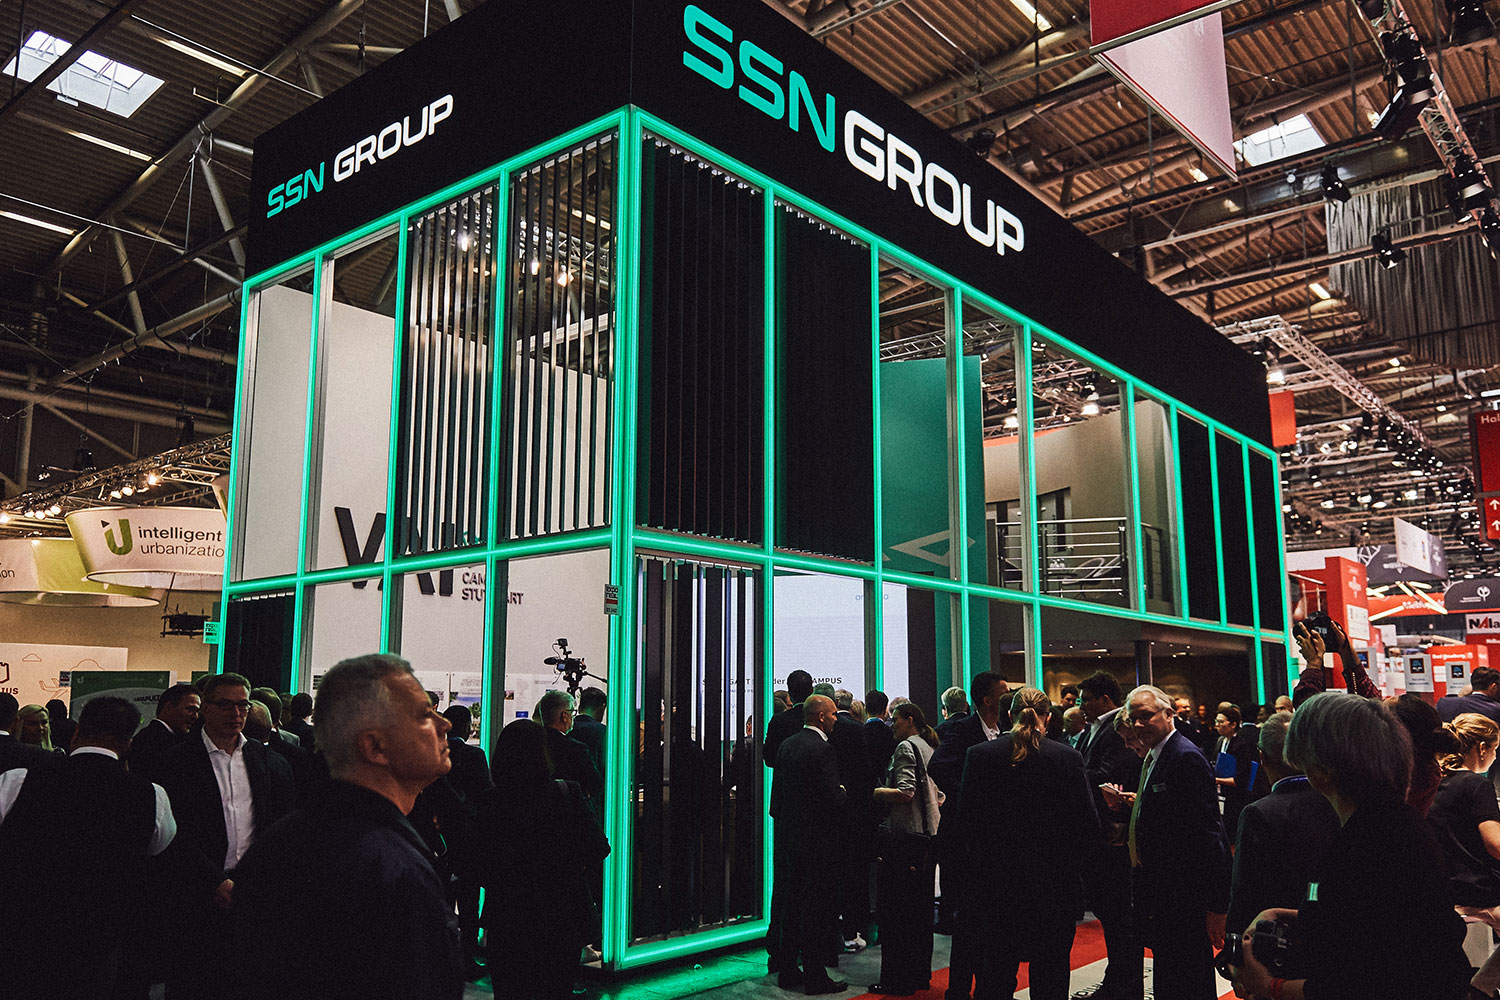 StudioNOW for SSN Group, Expo Real, booth, architecture, people, munich, media